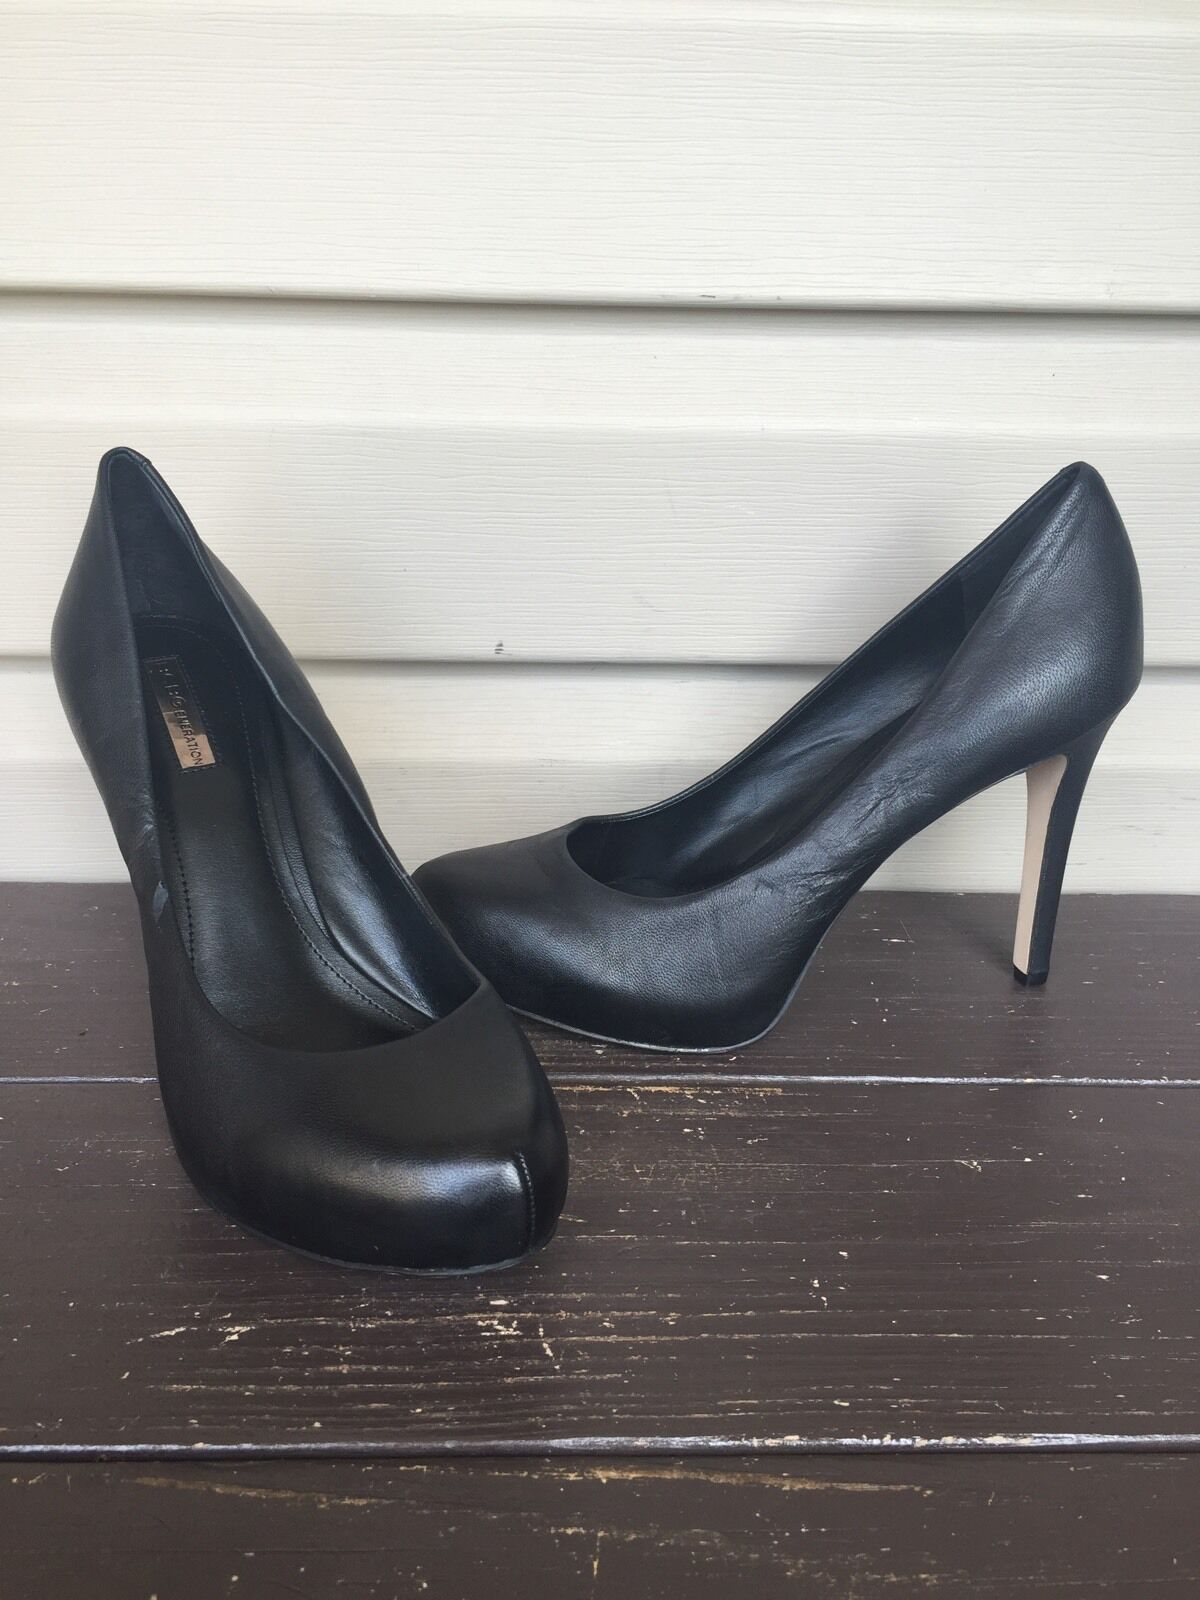 BCBG GENERATION TWIST PLATFORM PUMPS LEATHER HEELS ALMOND TOE noir SZ 9 NEW  90